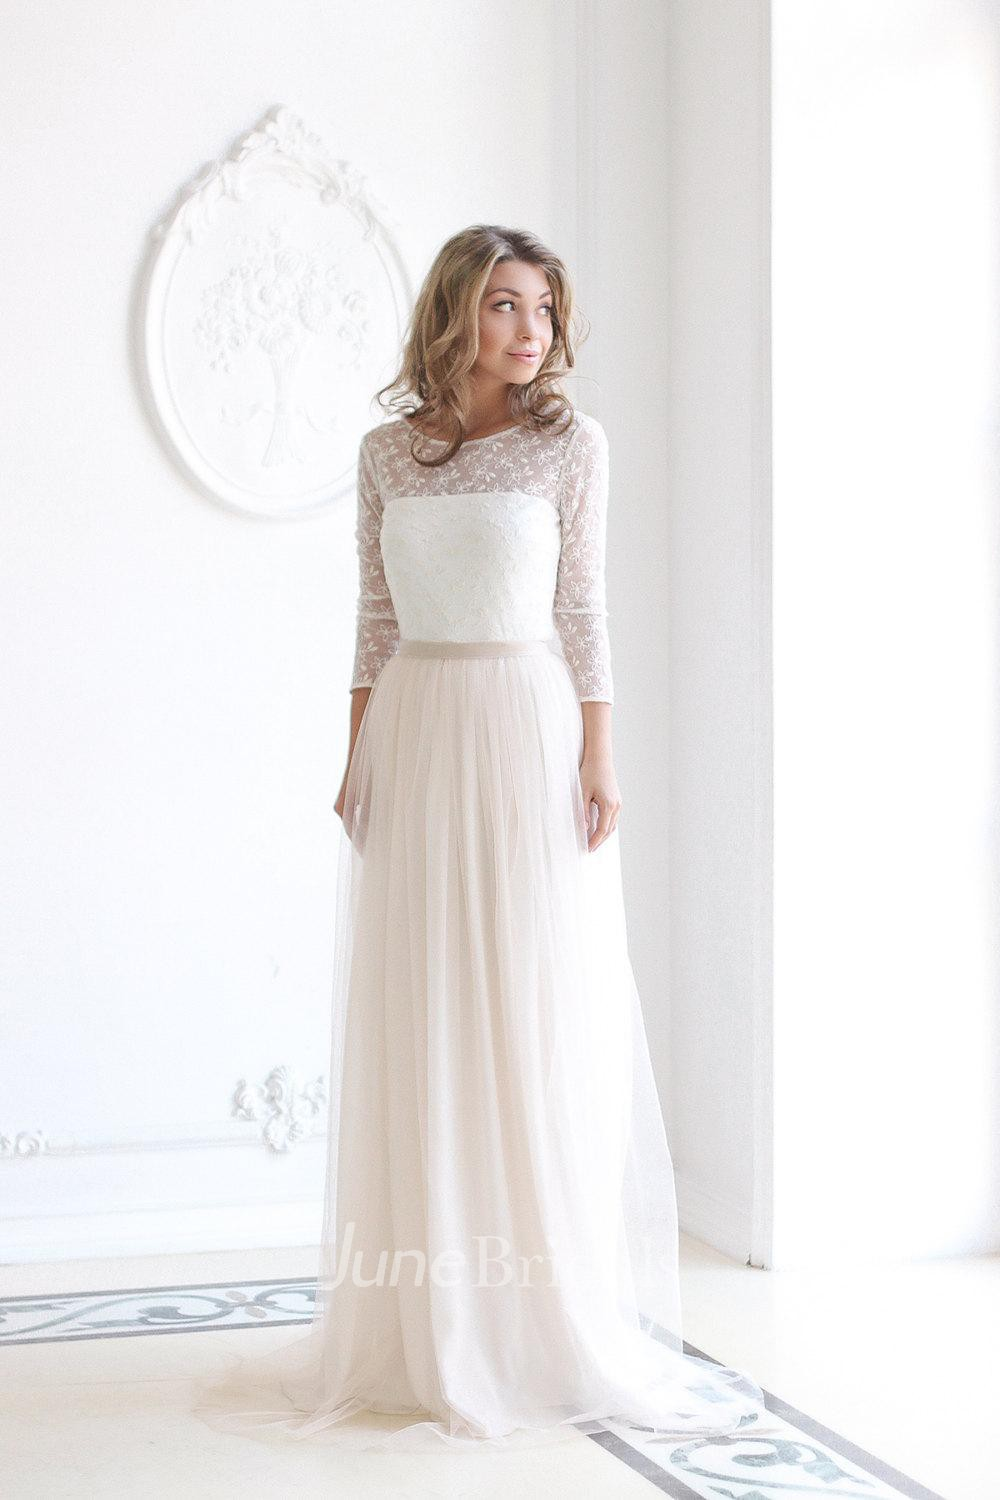 modest wedding dresses lds wedding dresses Scoop Neck Long Sleeve Tulle Wedding Dress With Lace Bodice